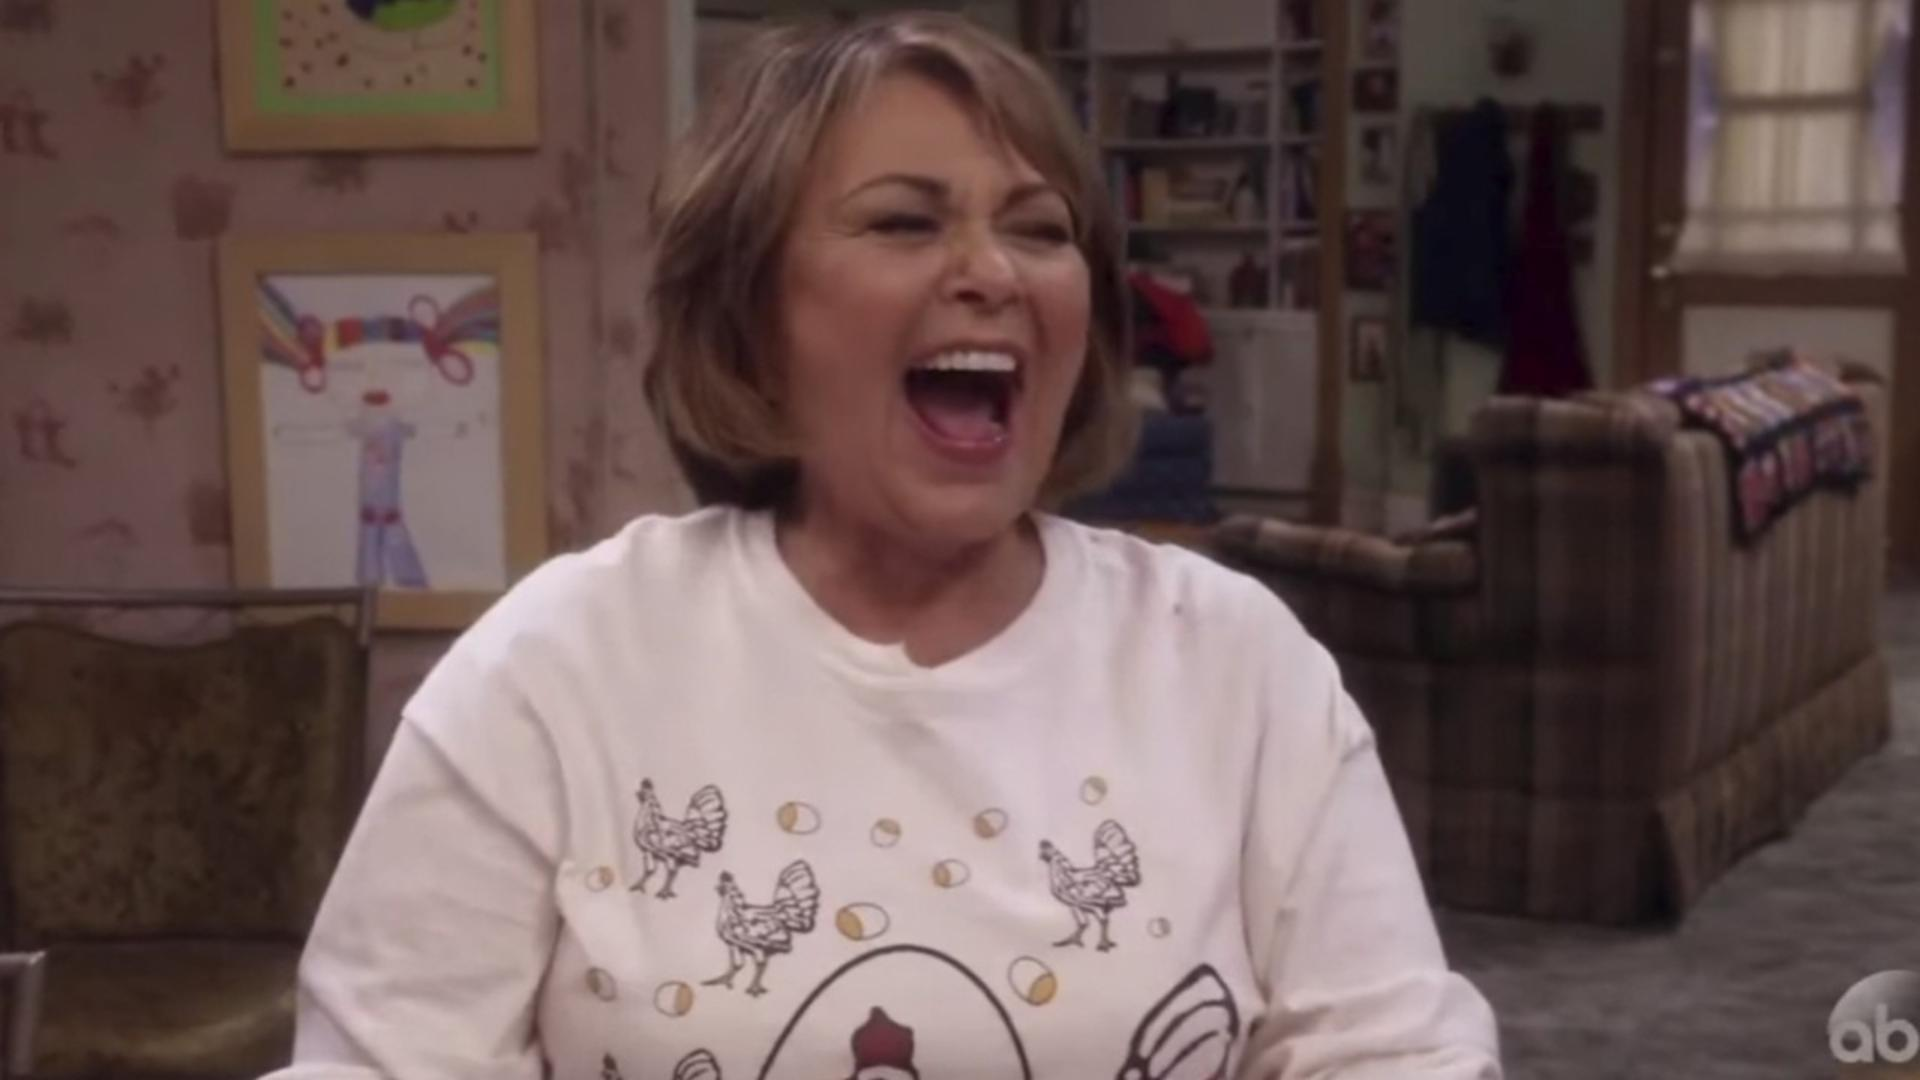 National News - Roseanne Barr Responds to 'The Connors' Killing Her Character Off